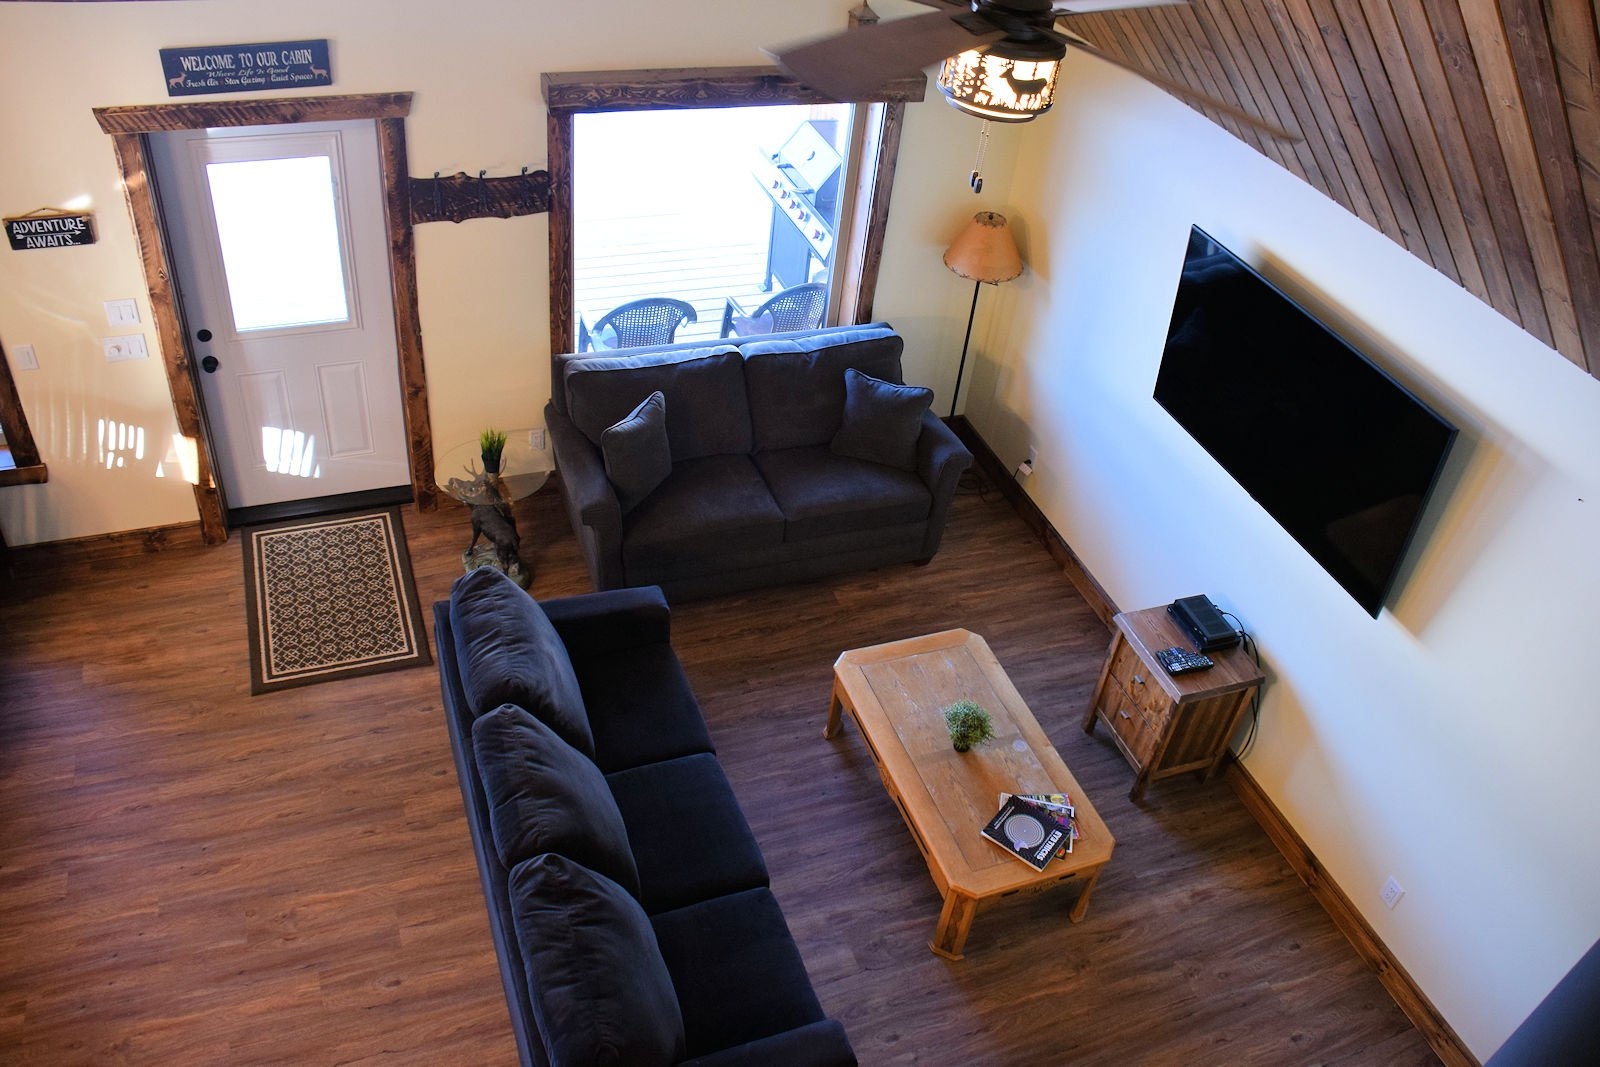 https://0901.nccdn.net/4_2/000/000/03f/ac7/view-from-loft-into-living-area-1600x1067.jpg